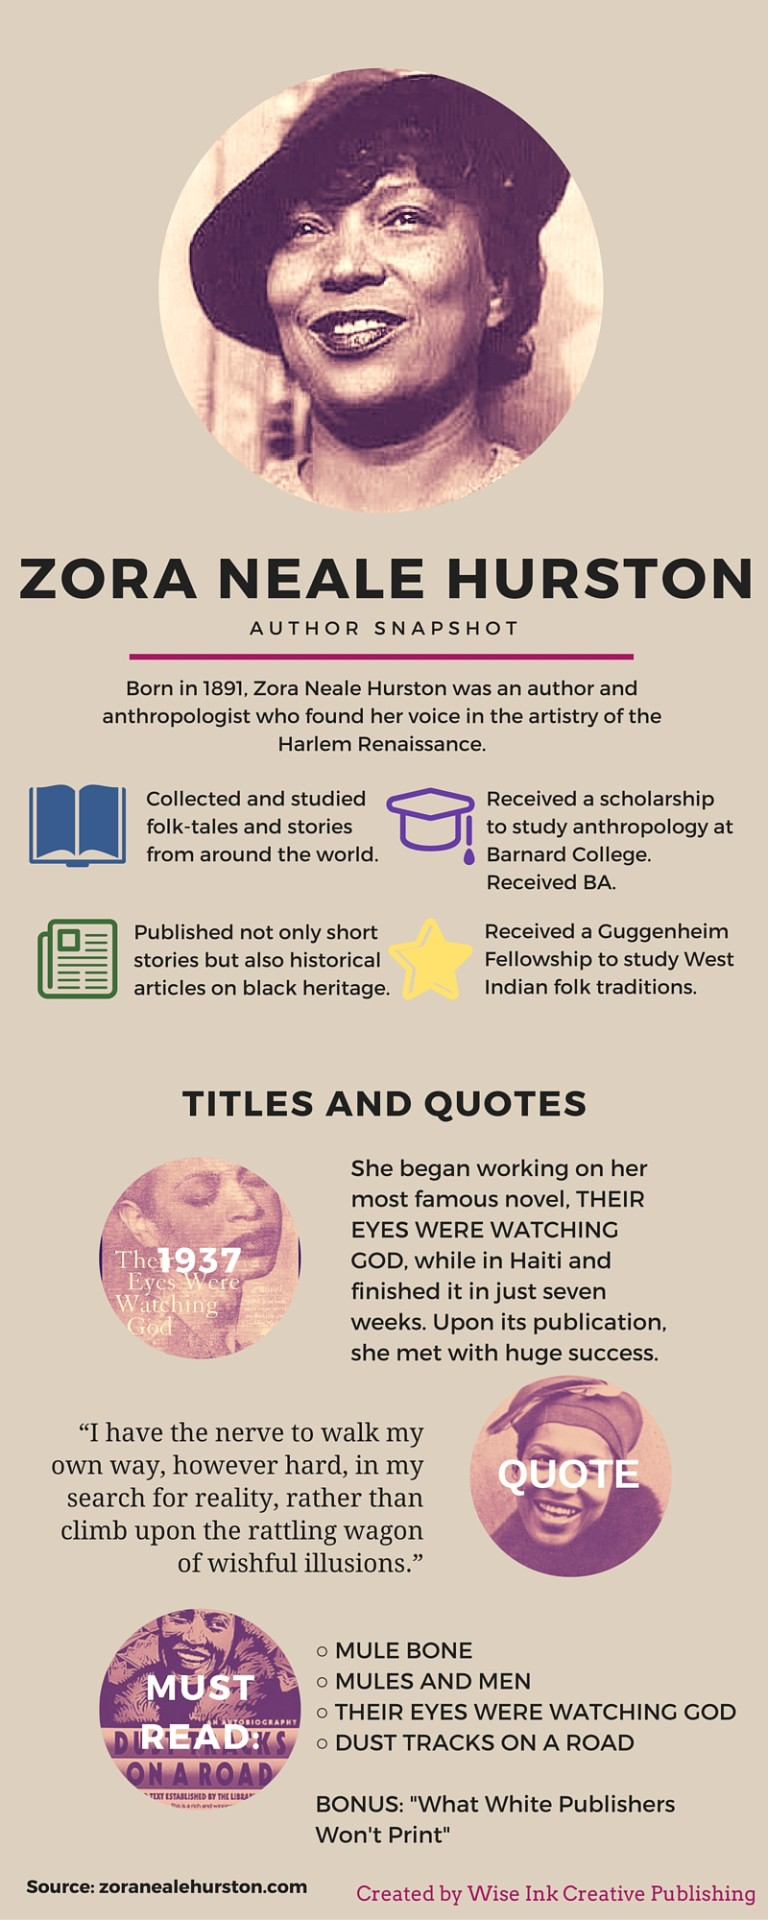 zora neale hurston - sense of self essay Zora neale hurston's sweat explores the problems of self-identification, self-consciousness, and struggle against abuse, struggle for equal rights as well as for defending womens rights for their own place in cultural life of the country, formation of own subnational culture, the embodiment of inner life of african americans in the united states.